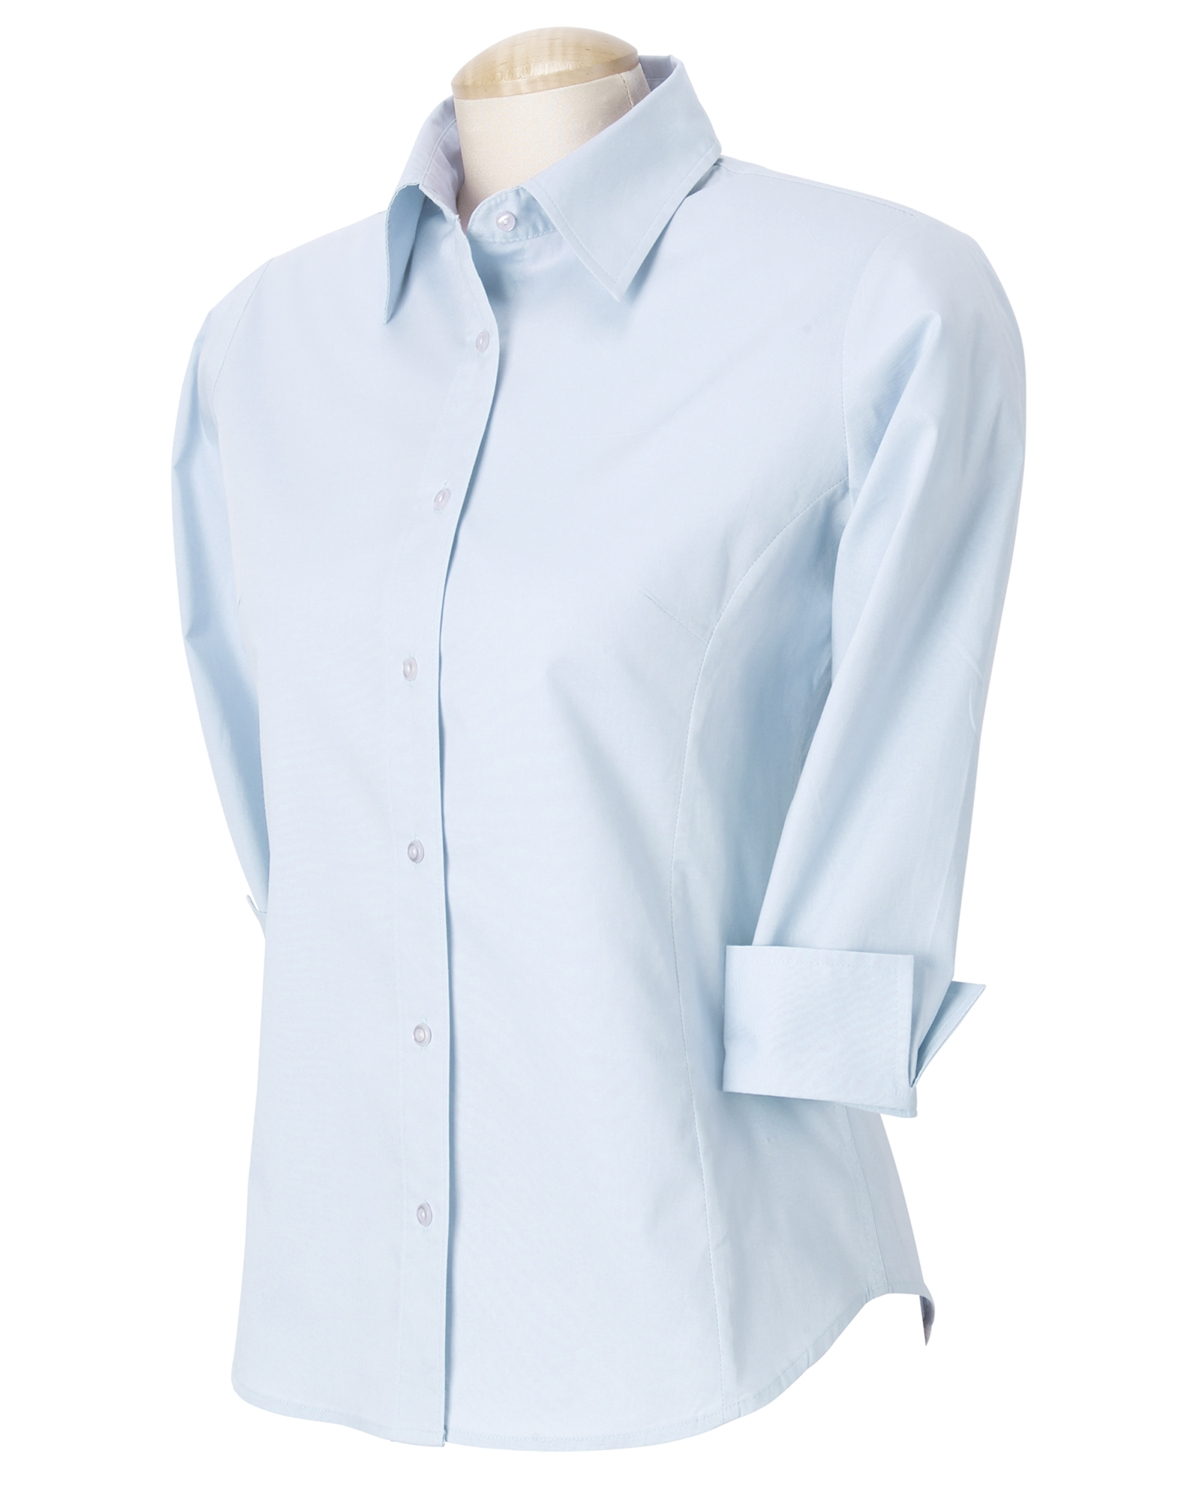 Devon & Jones DP625W Ladies'-Quarter Sleeve Stretch Poplin Blouse